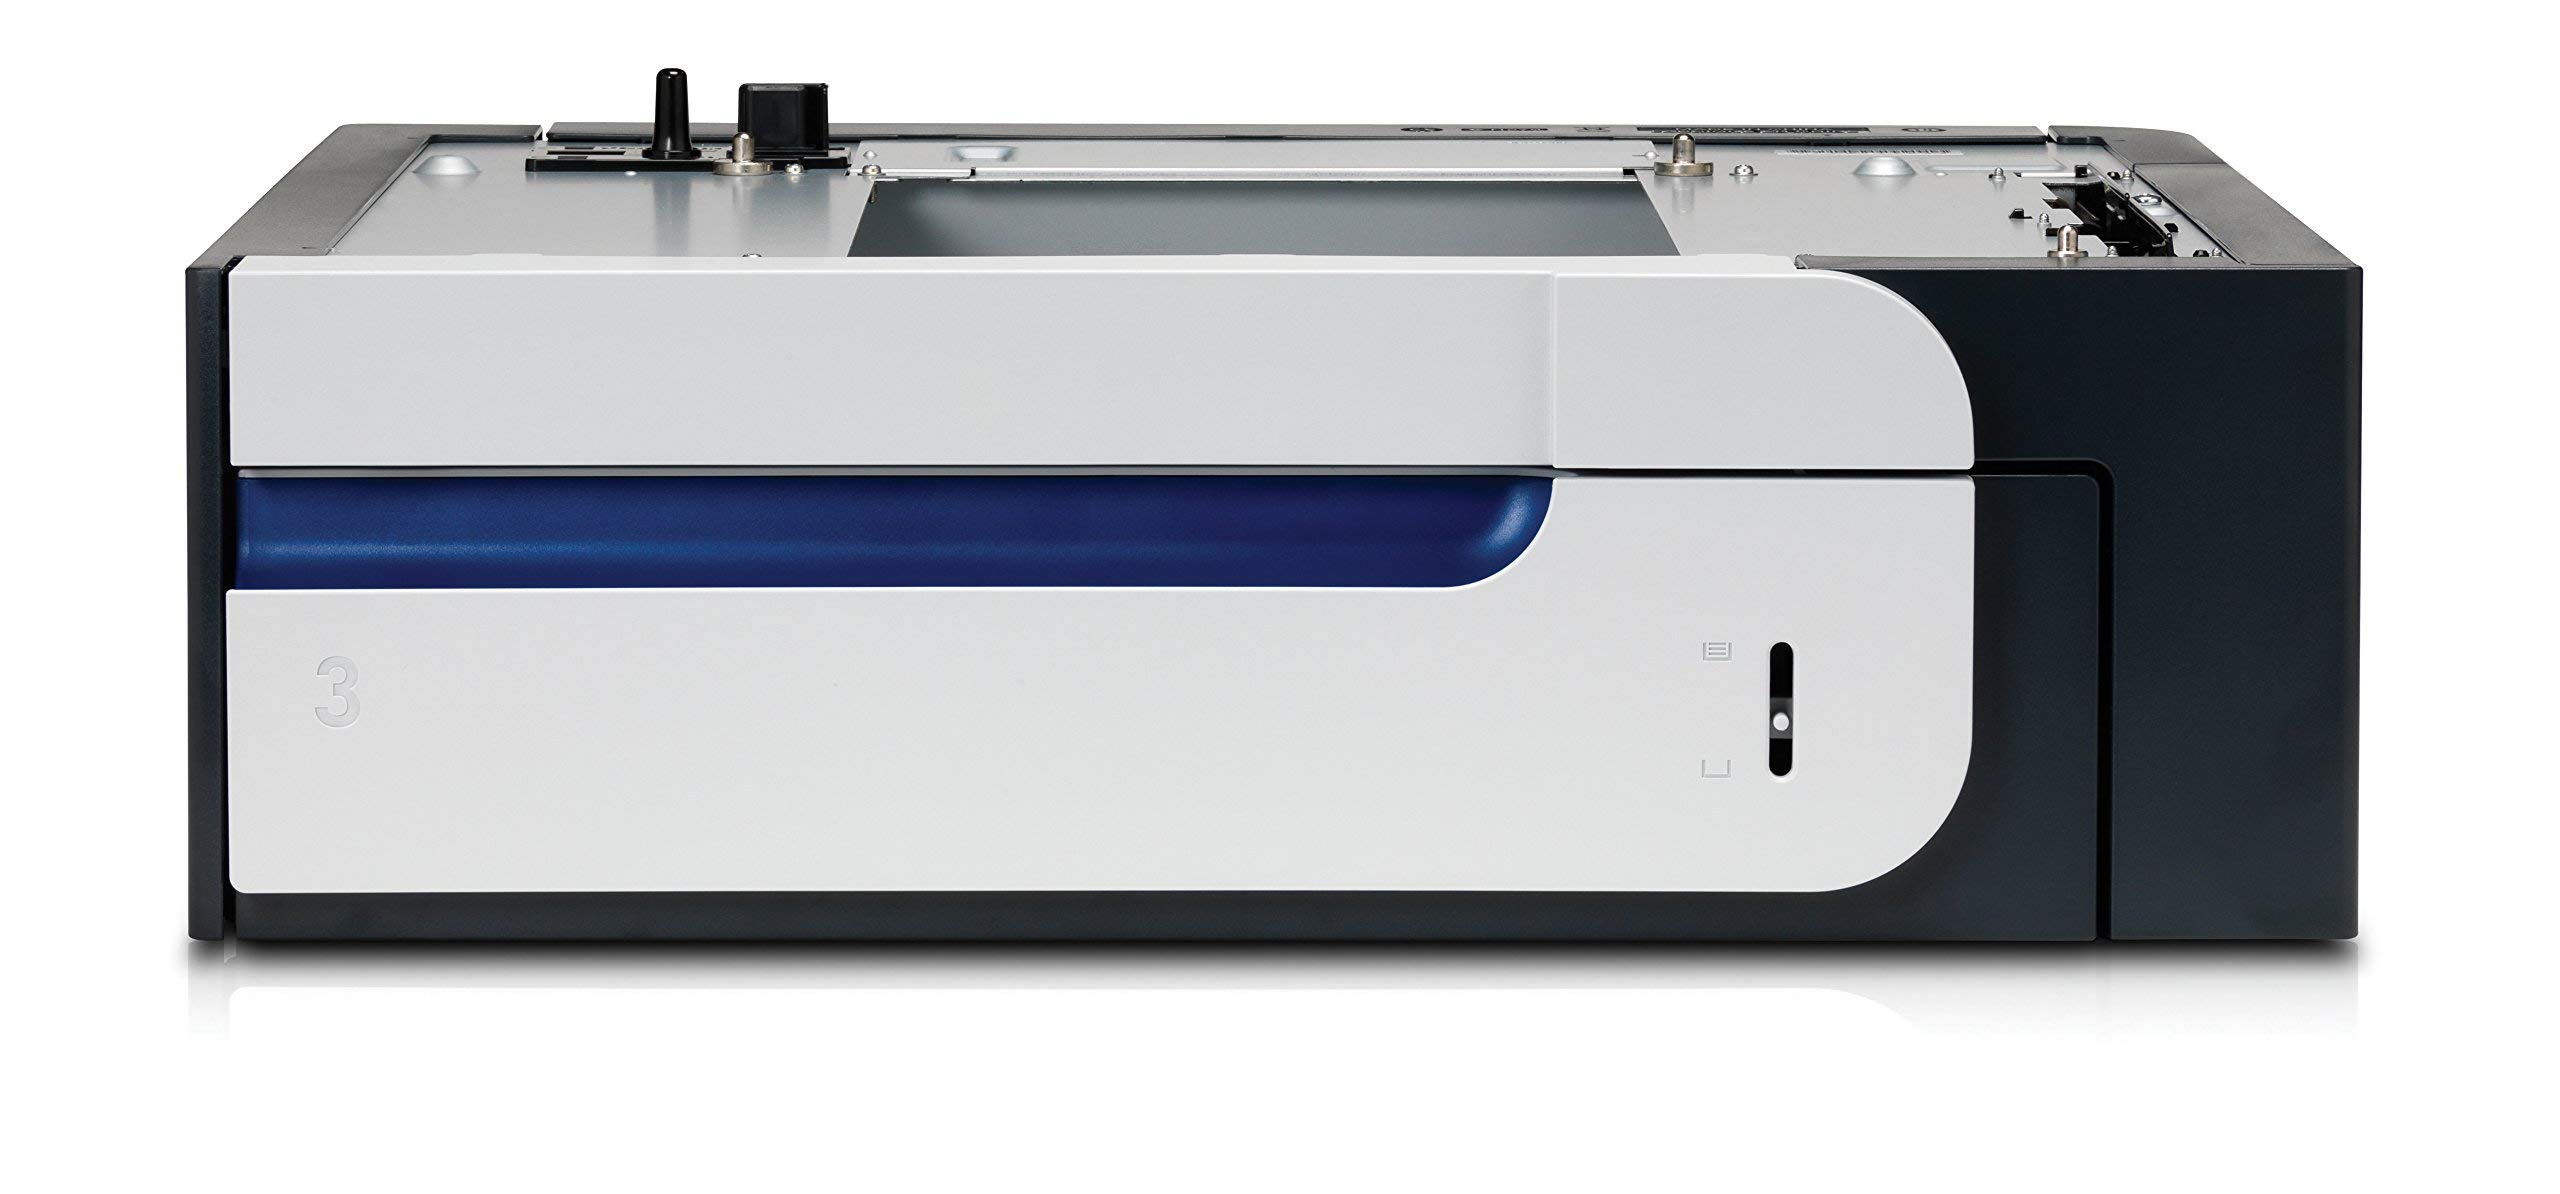 HP 669265-001 Heavy Media Paper Tray - Media tray - 500 sheets in 1 tray(s) - for Color LaserJet CM3530 MFP, CM3530fs MFP, CP3525, CP3525dn, CP3525n, CP3525x (Renewed) by HP (Image #1)